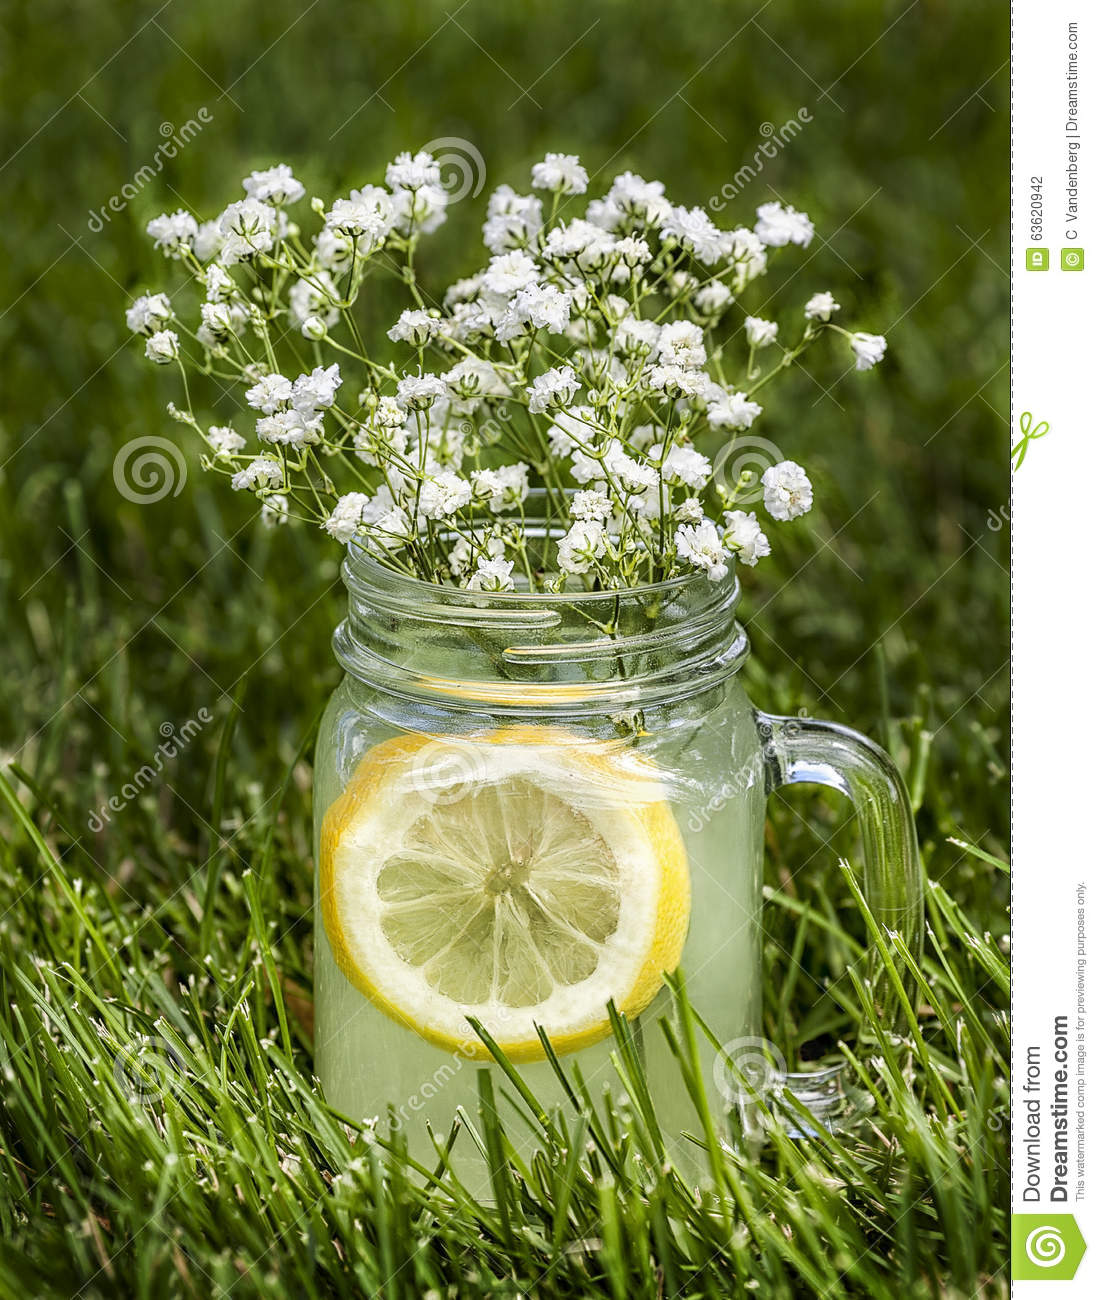 Mug of lemonade in the grass with tiny flowers stock photo image mug of lemonade in the grass with tiny flowers stock photo image 63620942 dhlflorist Image collections